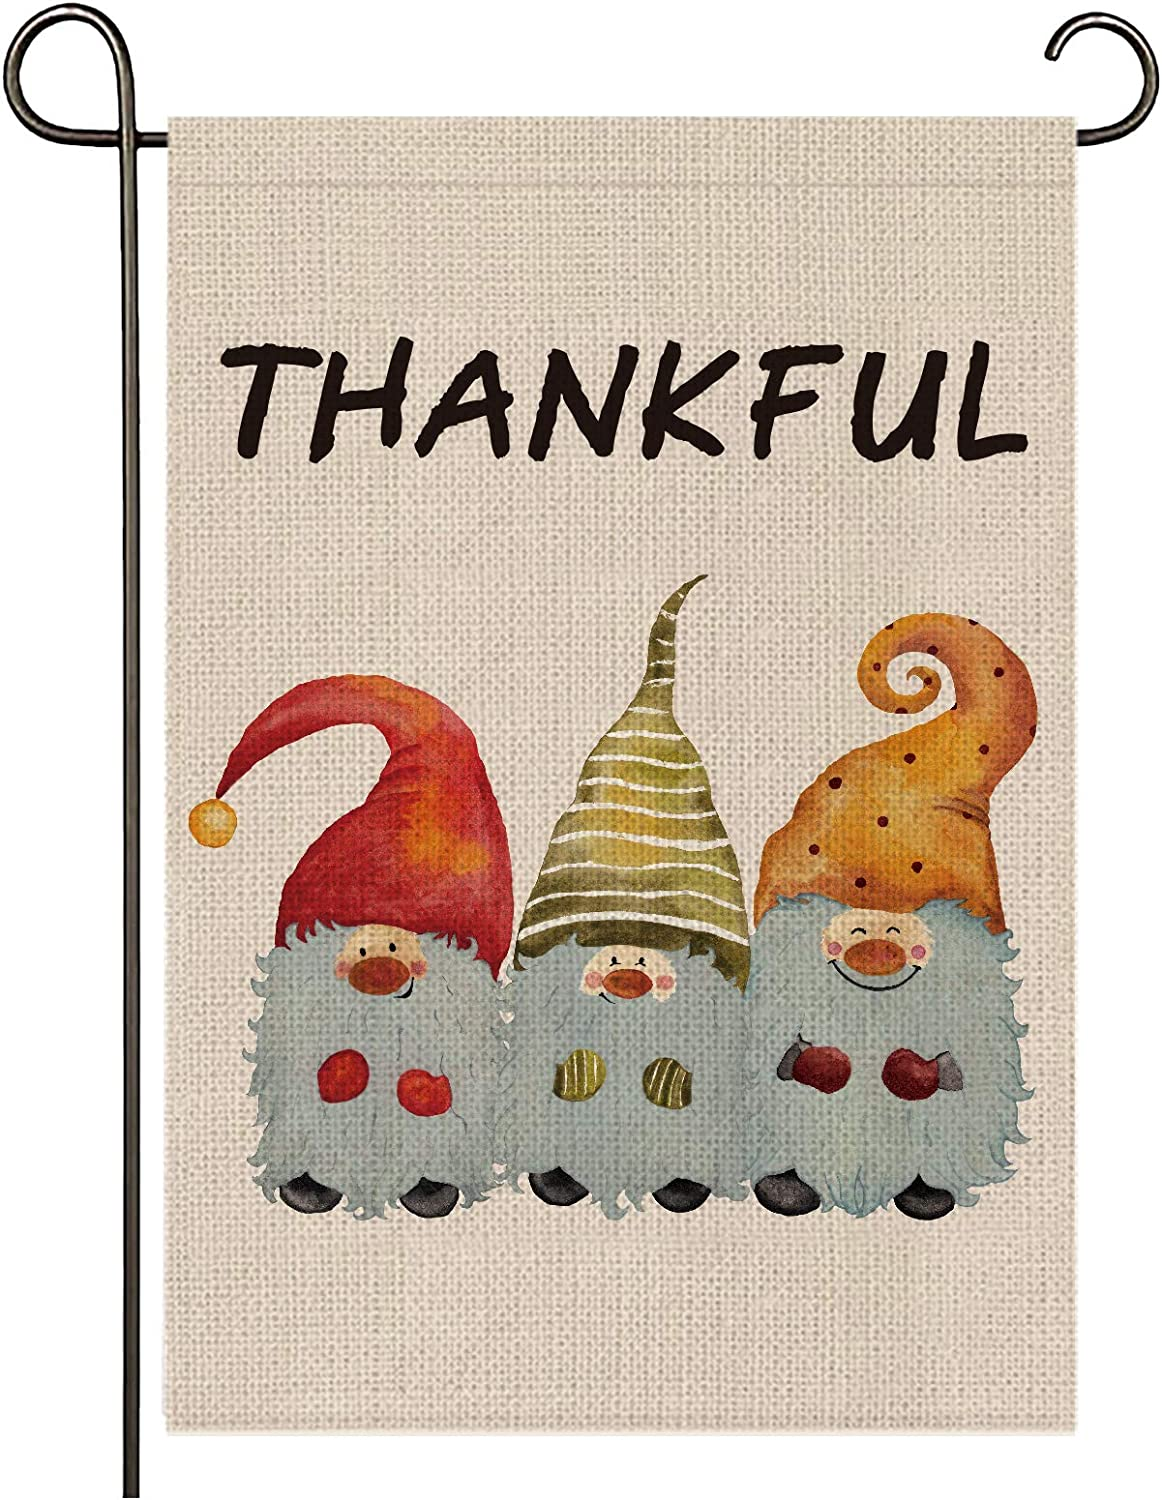 onetoze Thanksgiving Garden Flag,Gnomes Thankful Garden Flag, 12.5X18inches Premium Burlap Weather Proof for Outside Yard Outdoor Decoration